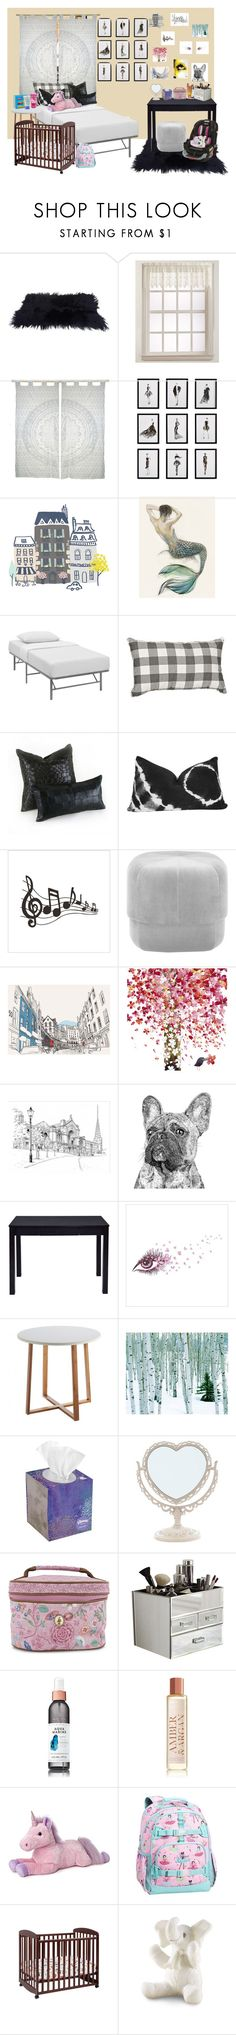 """Untitled #1"" by becca14a ❤ liked on Polyvore featuring interior, interiors, interior design, home, home decor, interior decorating, Lichtenberg, Frontgate, Normann Copenhagen and PiP Studio"